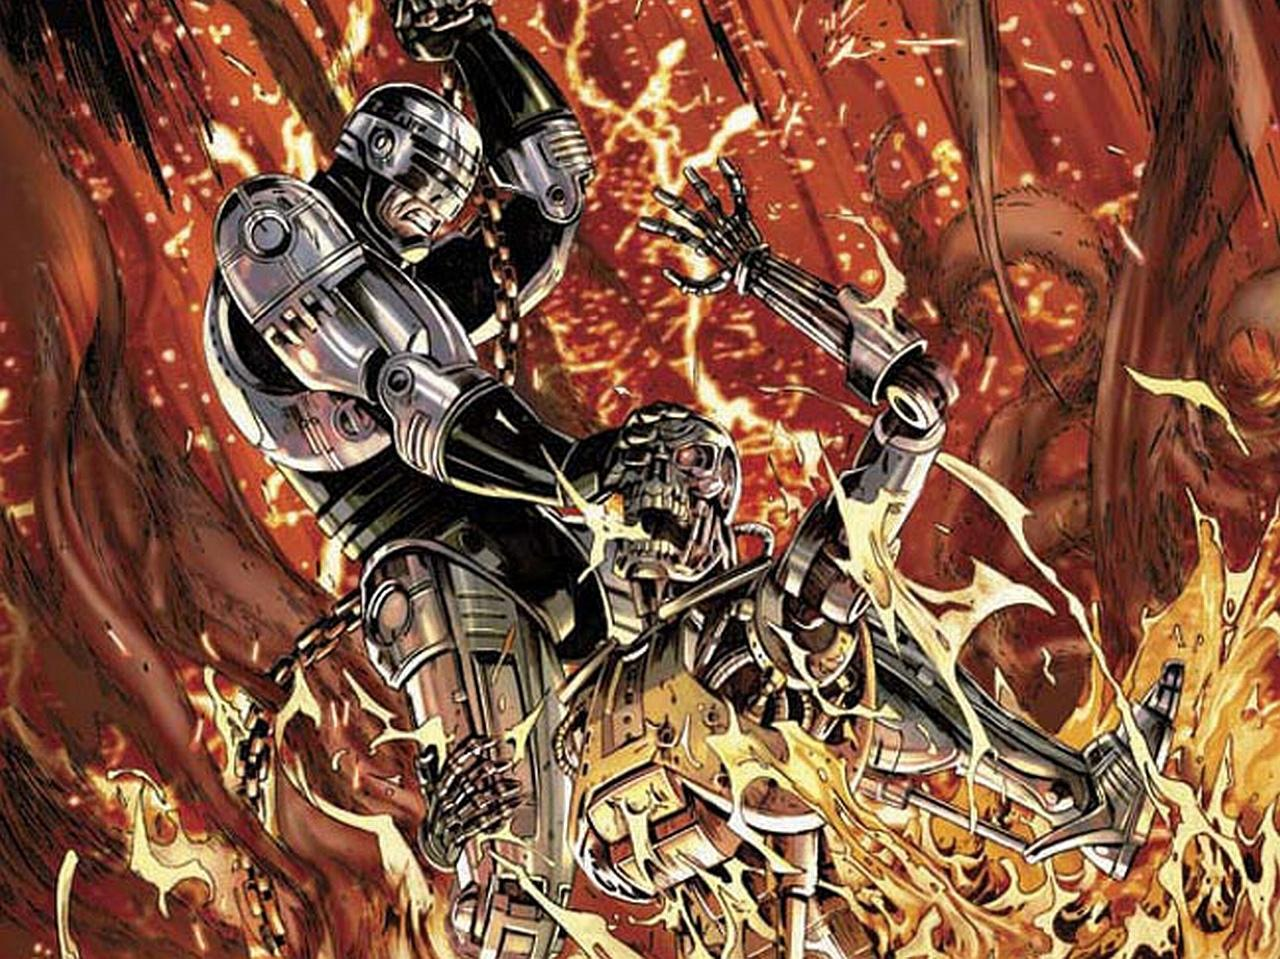 Terminator Robocop at 640 x 1136 iPhone 5 size wallpapers HD quality